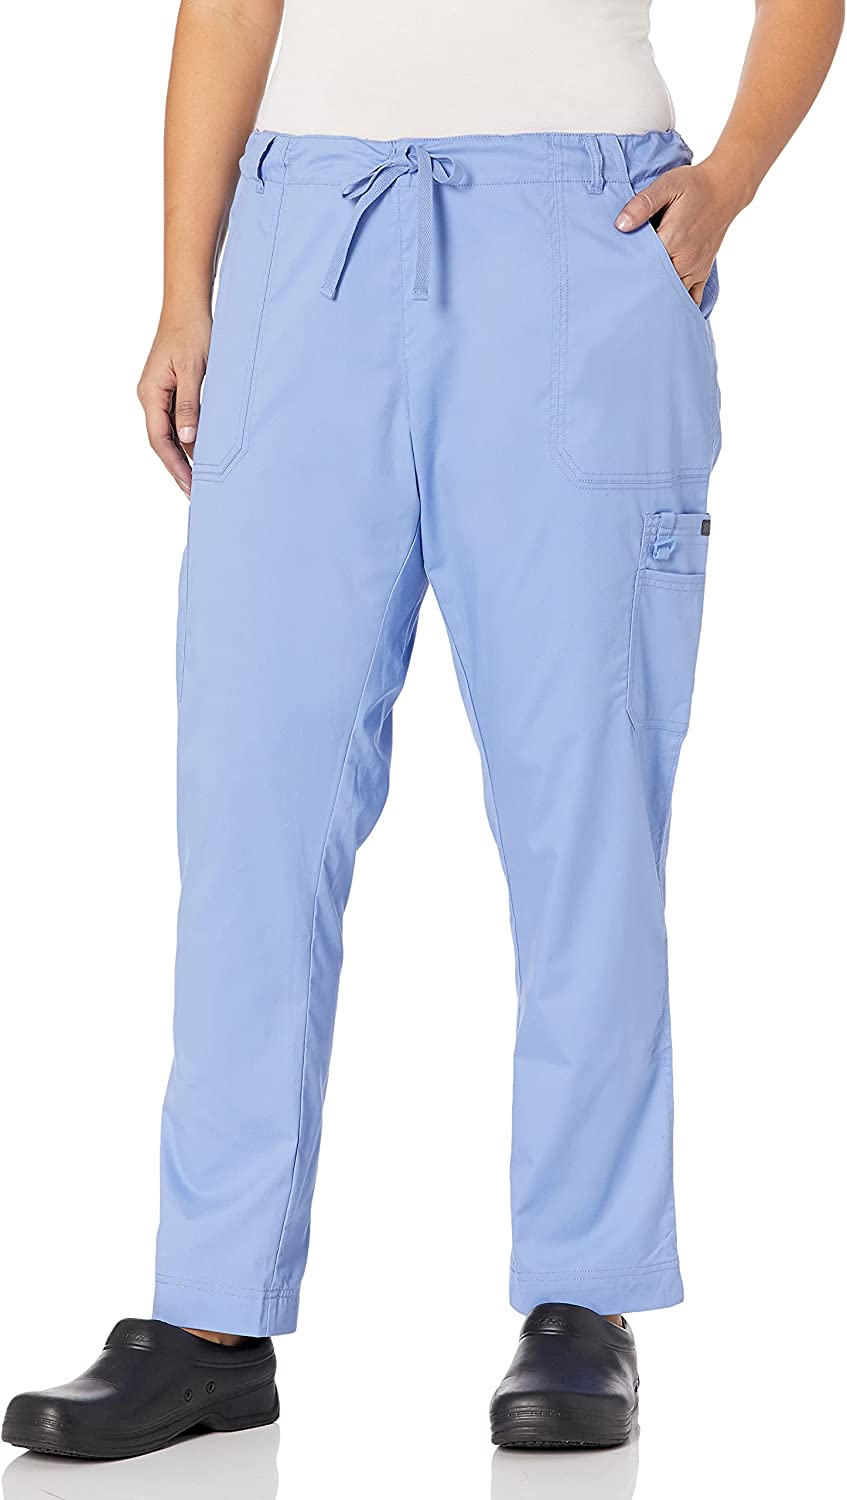 Directly Discount mail order managed store Carhartt Cross-Flex Boot Cut Scrub Pants S Extended 2XL Royal -